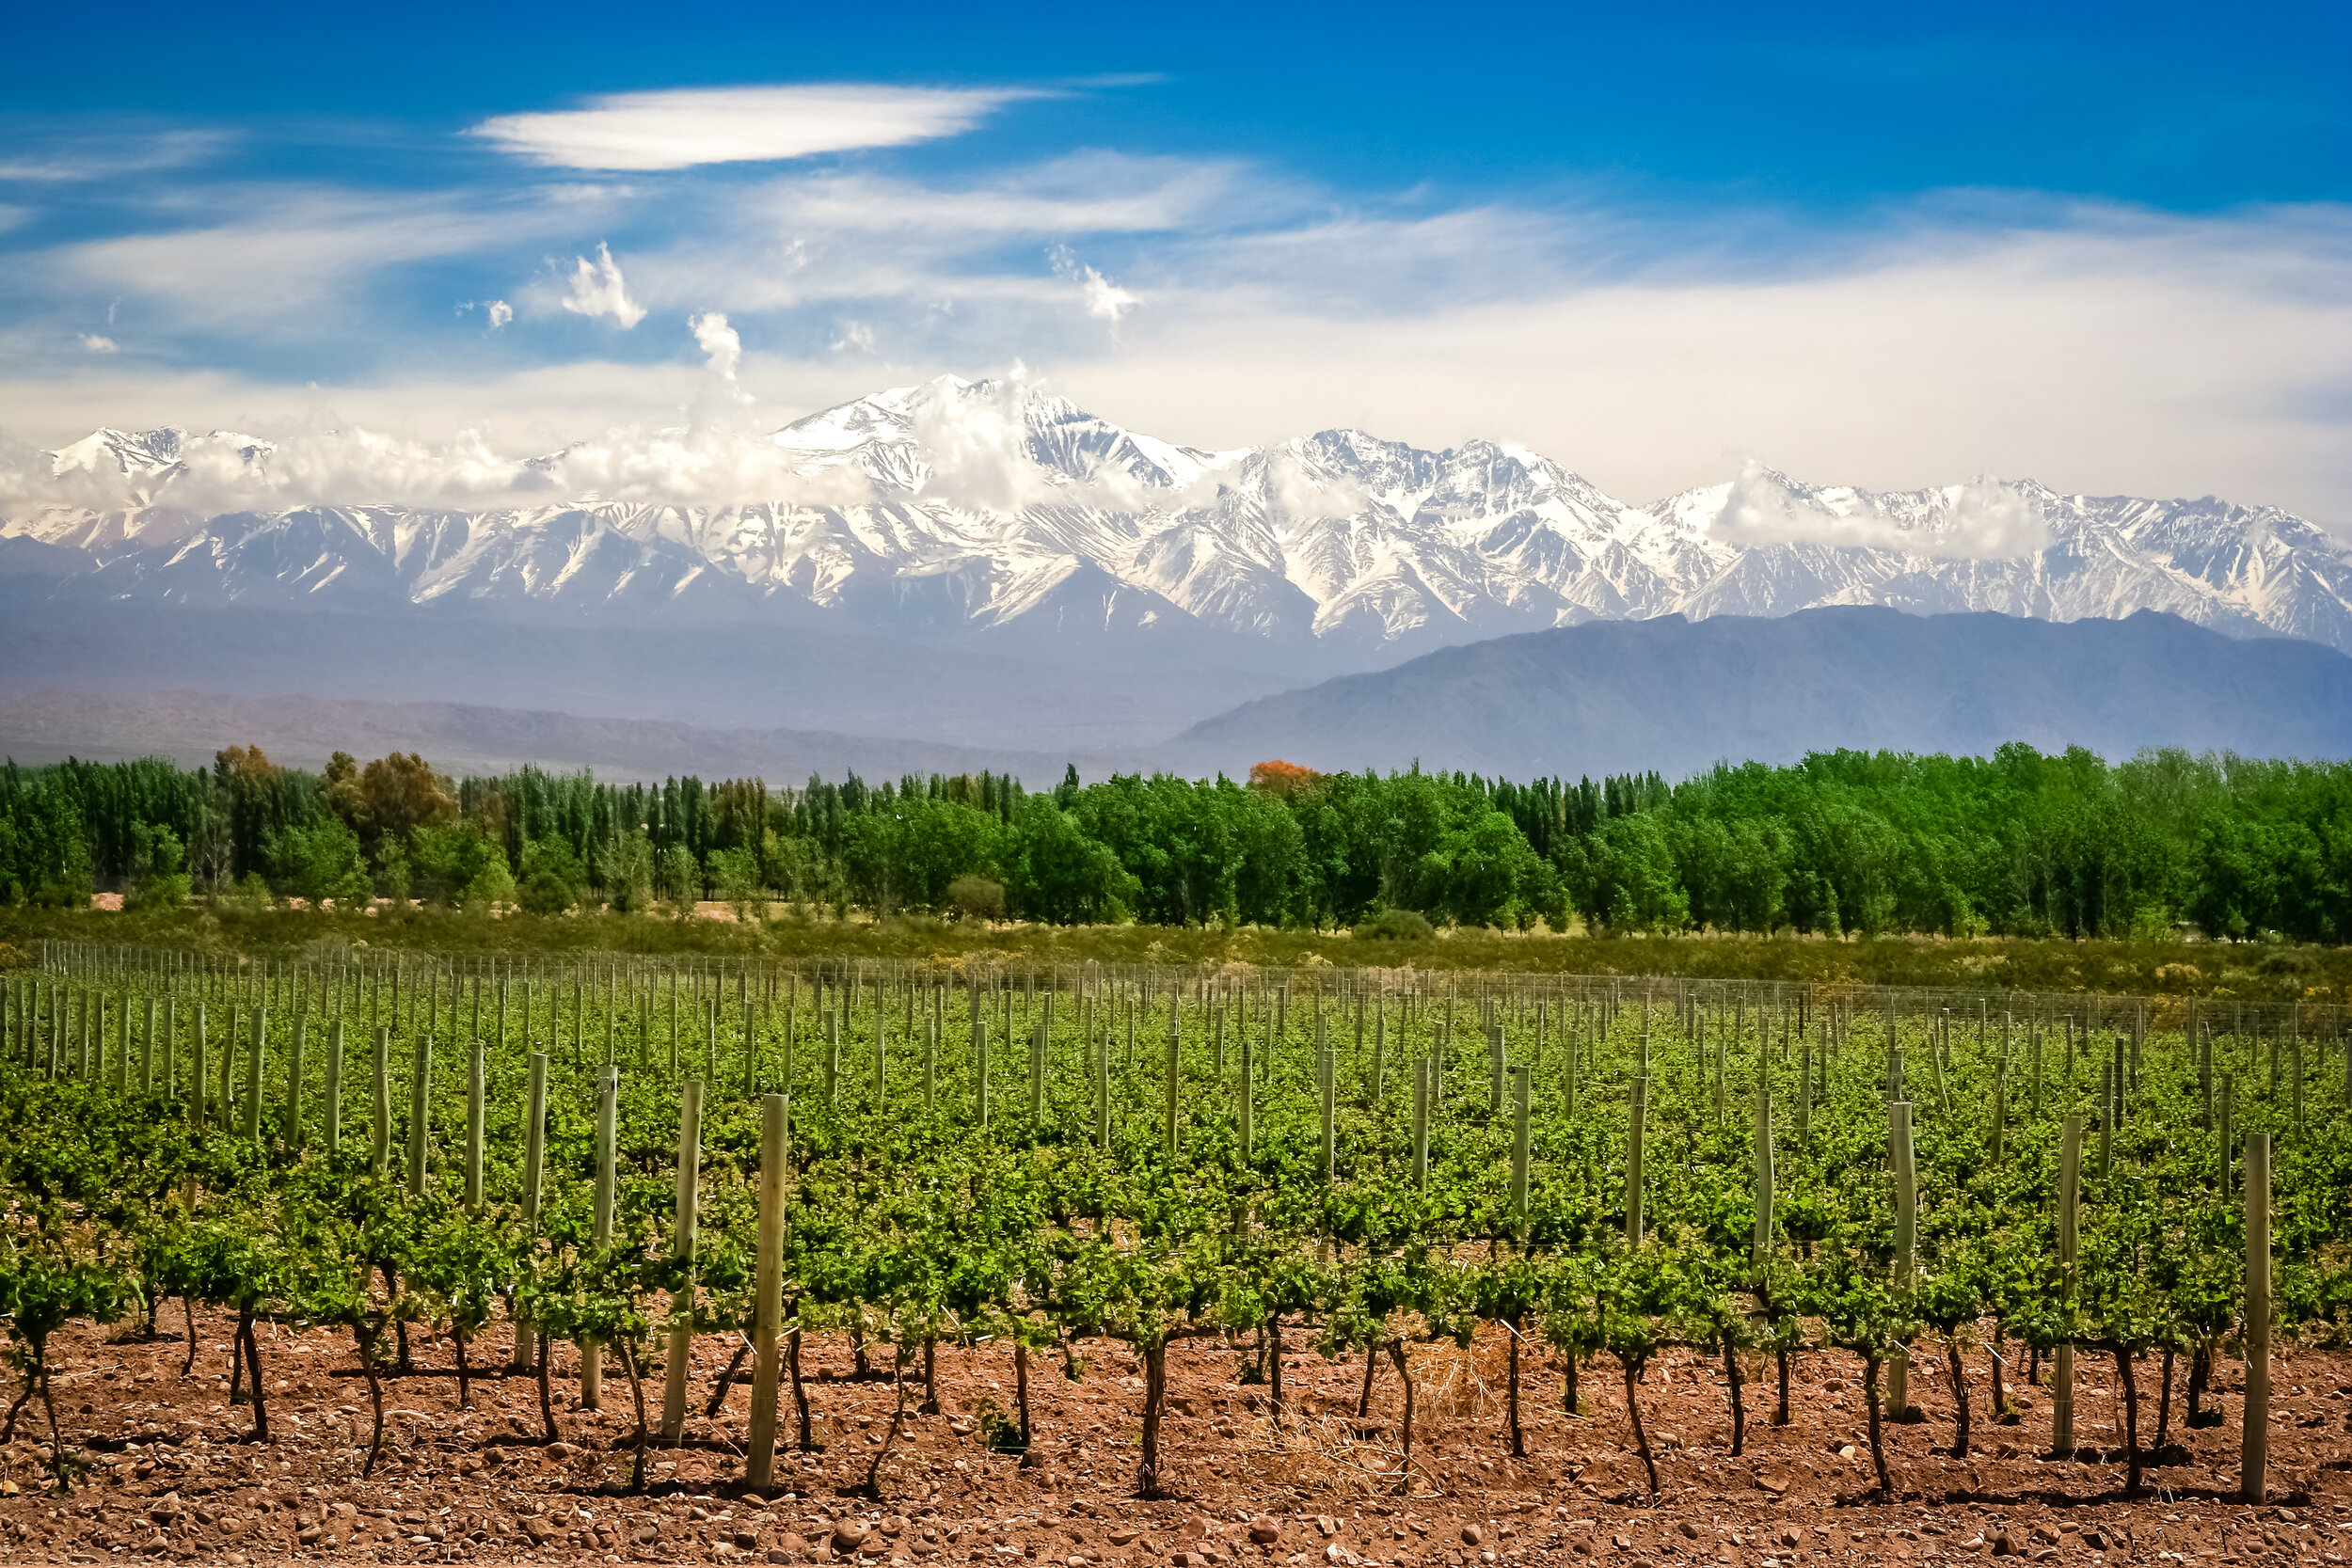 Organic vineyards near Mendoza in Argentina with Andes in the background.jpg